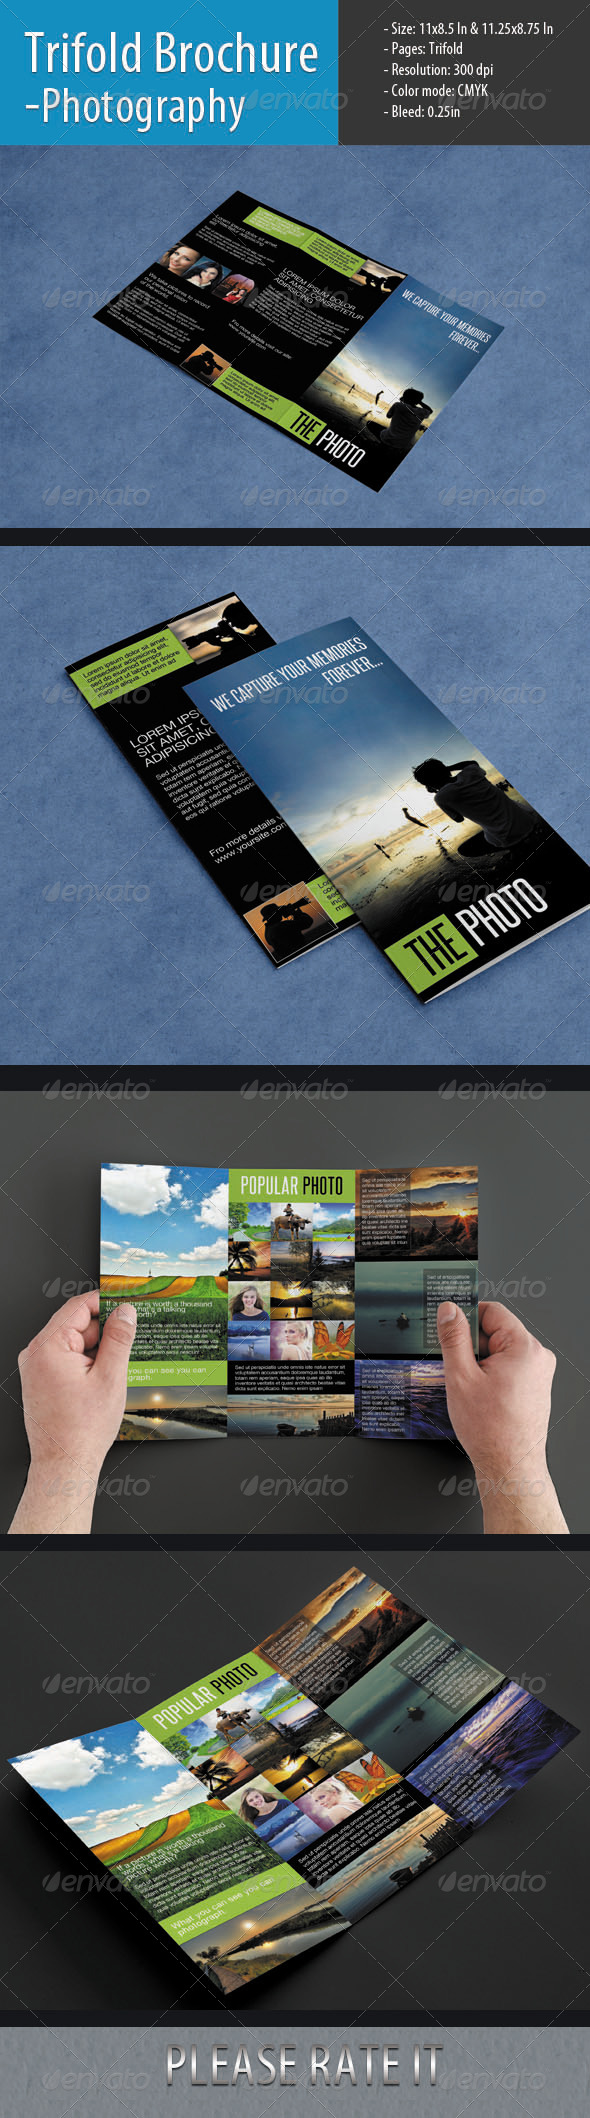 Trifold Brochure For Photography - Informational Brochures